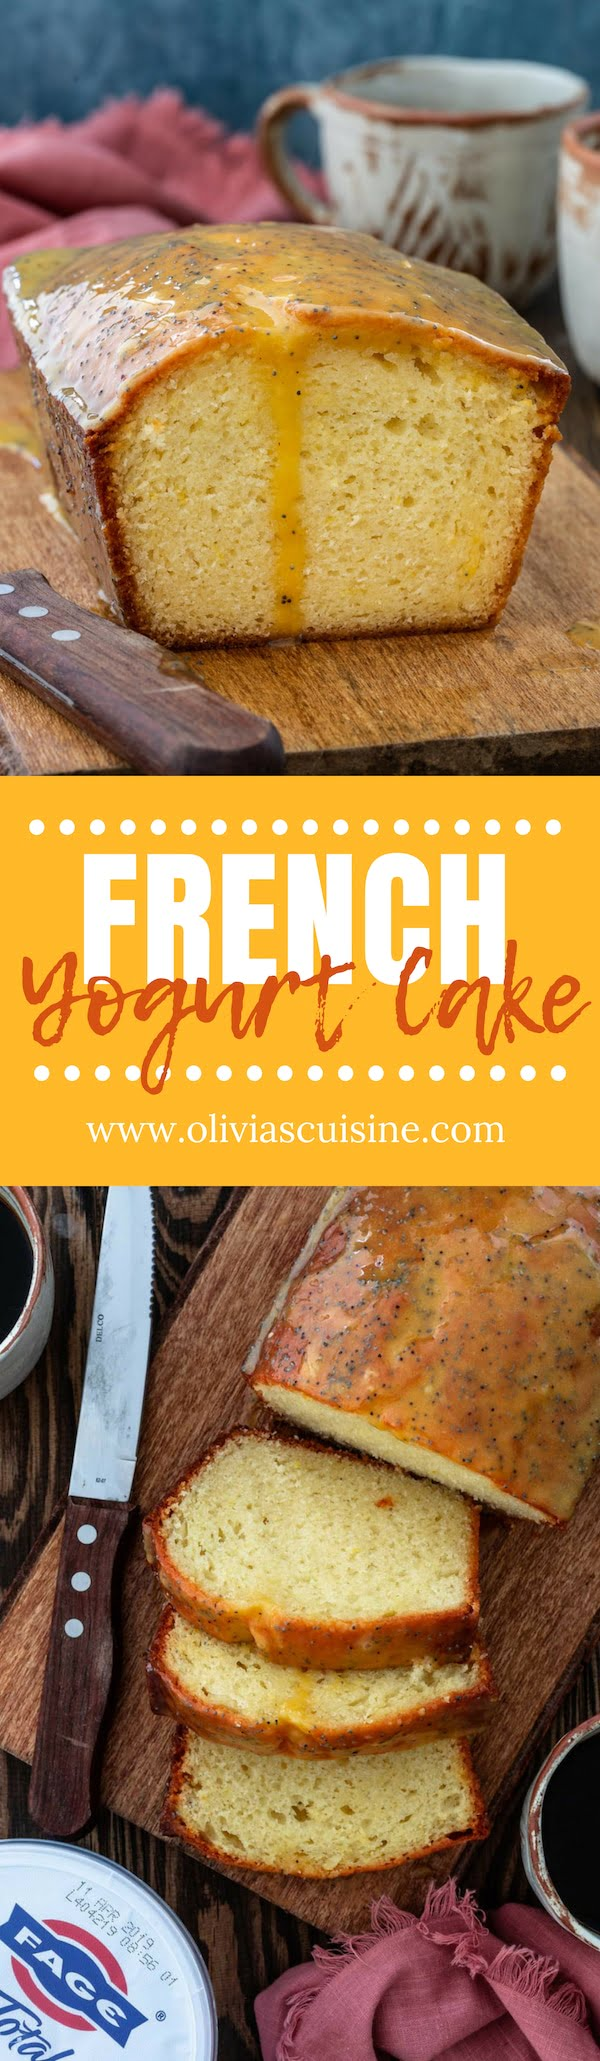 French Yogurt Cake   www.oliviascuisine.com   No need for a fancy pastry school degree to master this delicious French Yogurt Cake! Just like the ones the grandmas in France make: moist and fluffy, yet incredibly simple. (Recipe and food photography by @oliviascuisine.) #yogurt #cake #baking #yogurtcake